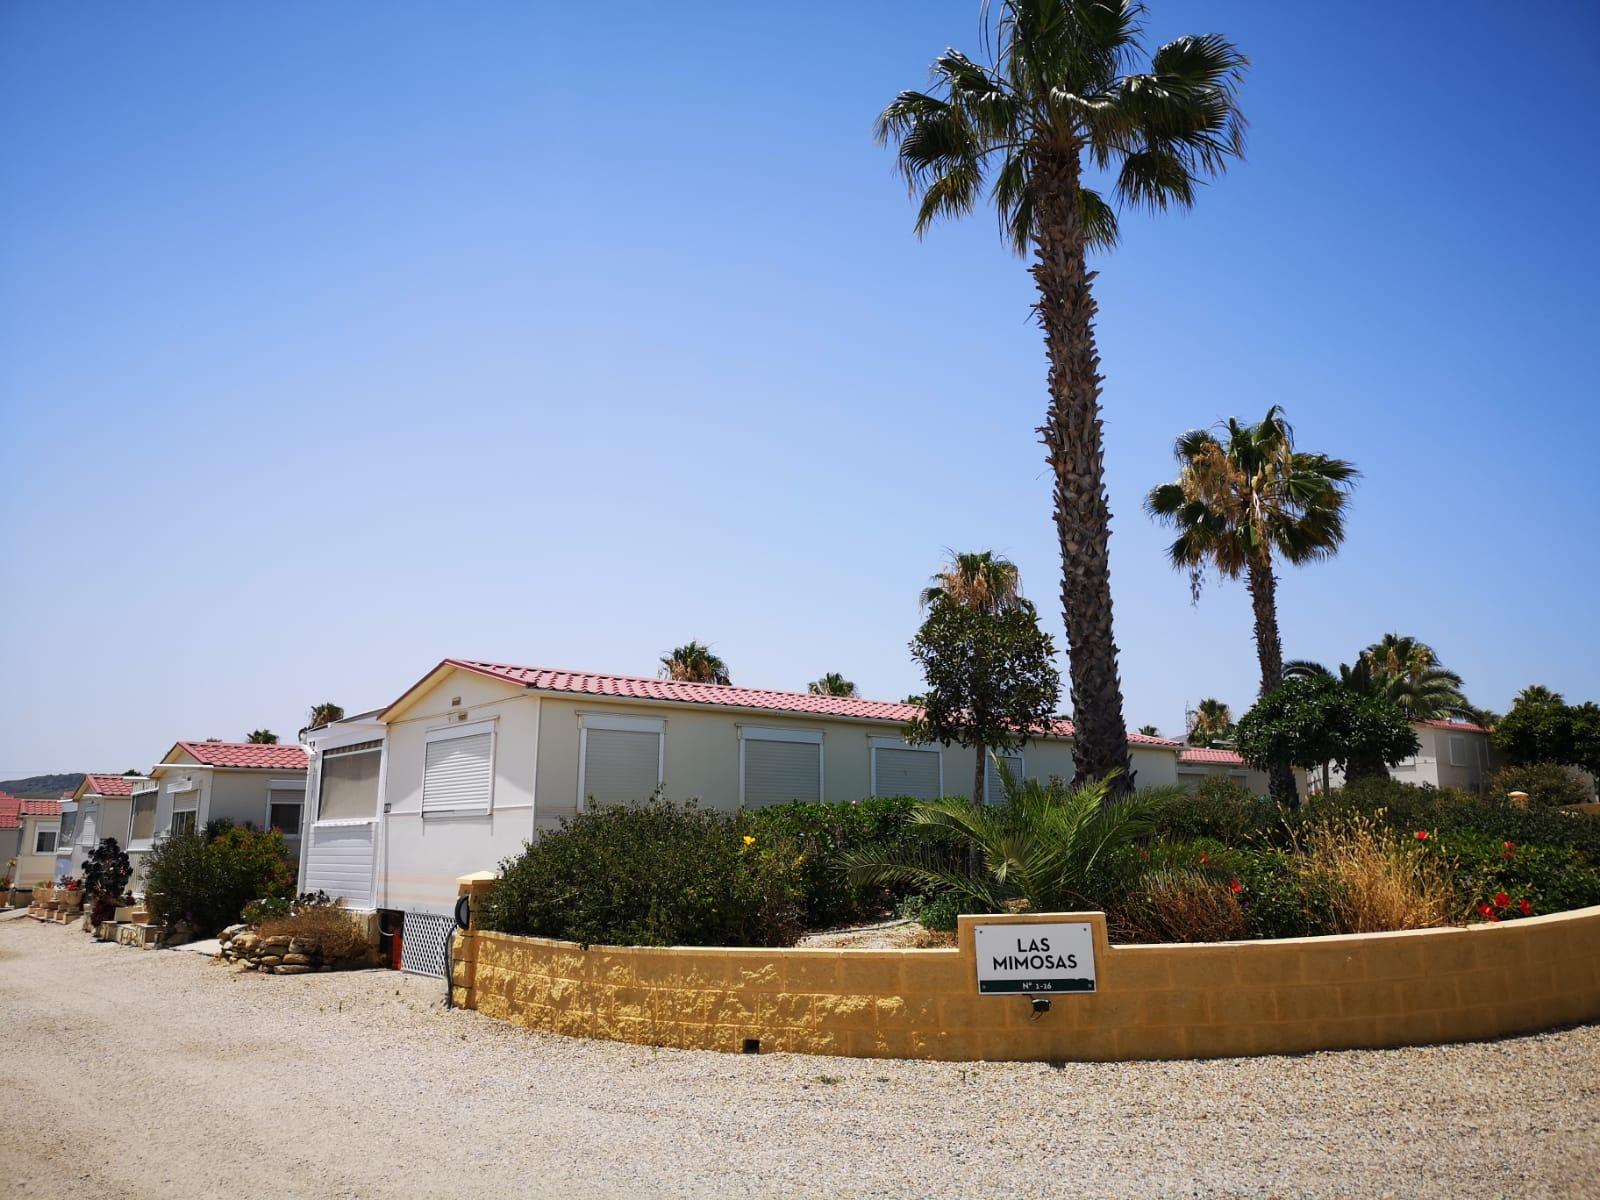 2 bed, 1 bath mobile home for sale in Las Mimosas